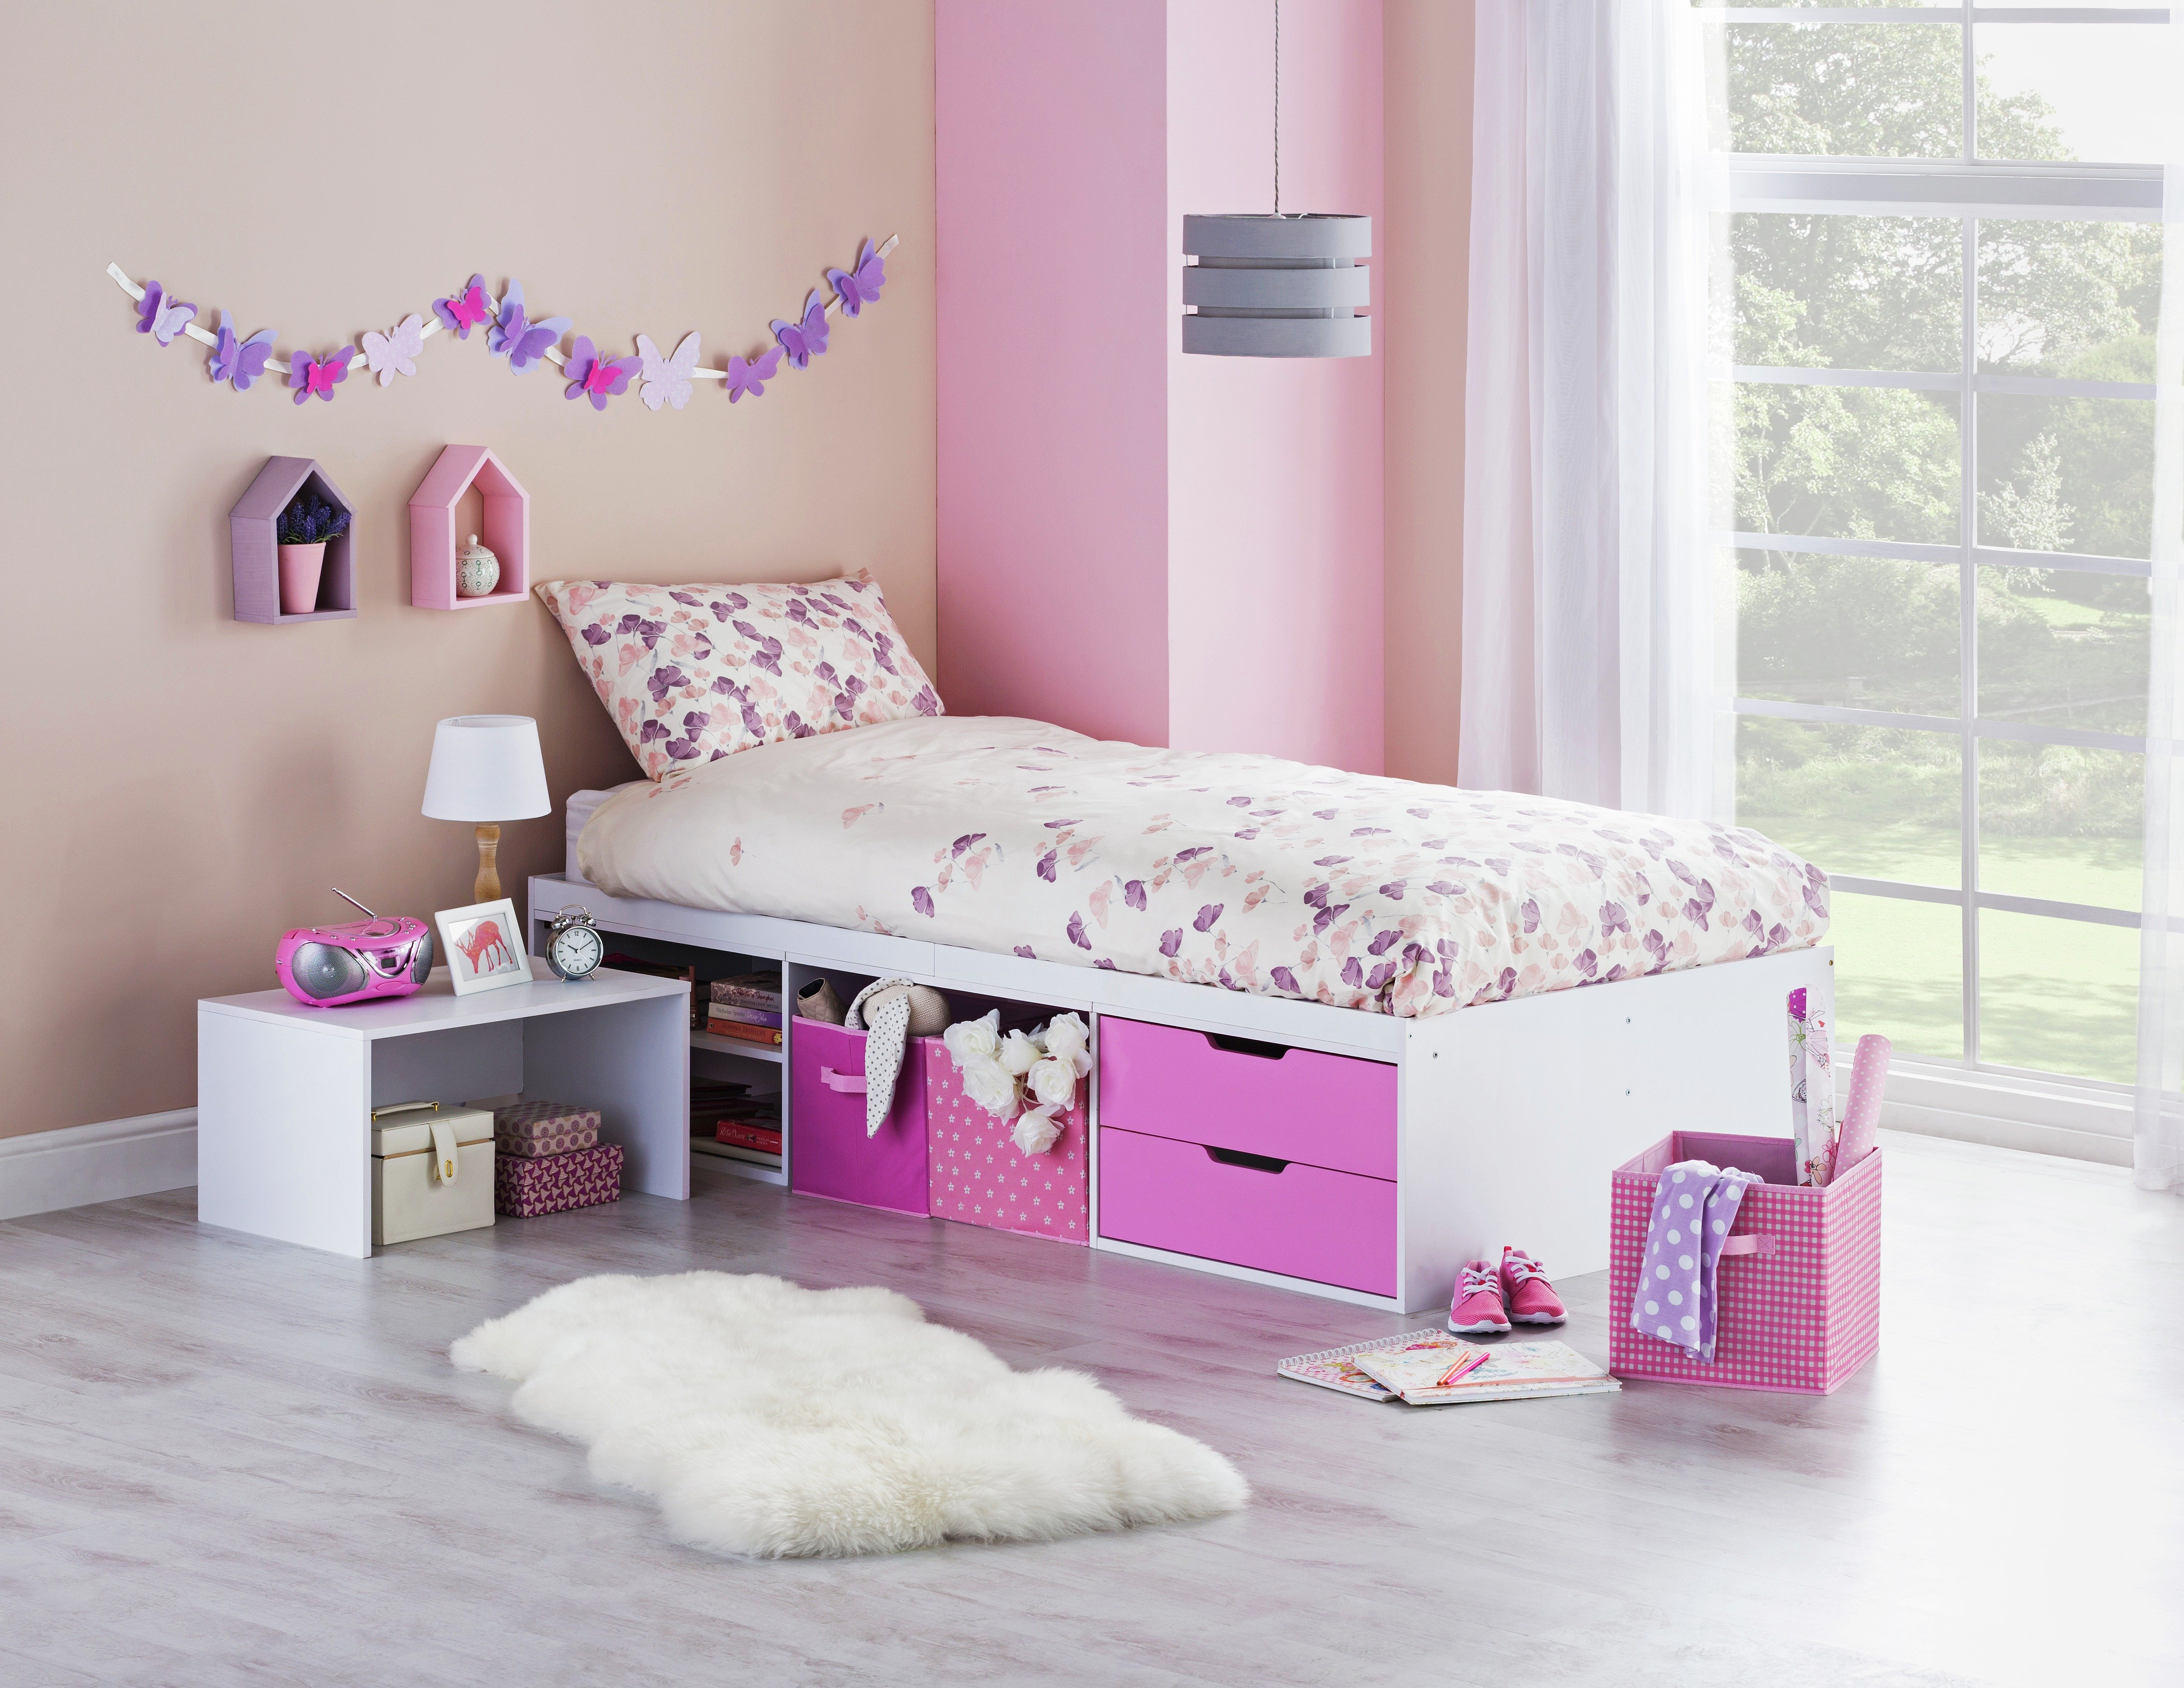 callum-cabin-bed-with-pull-out-desk-ashley-mattress-pink